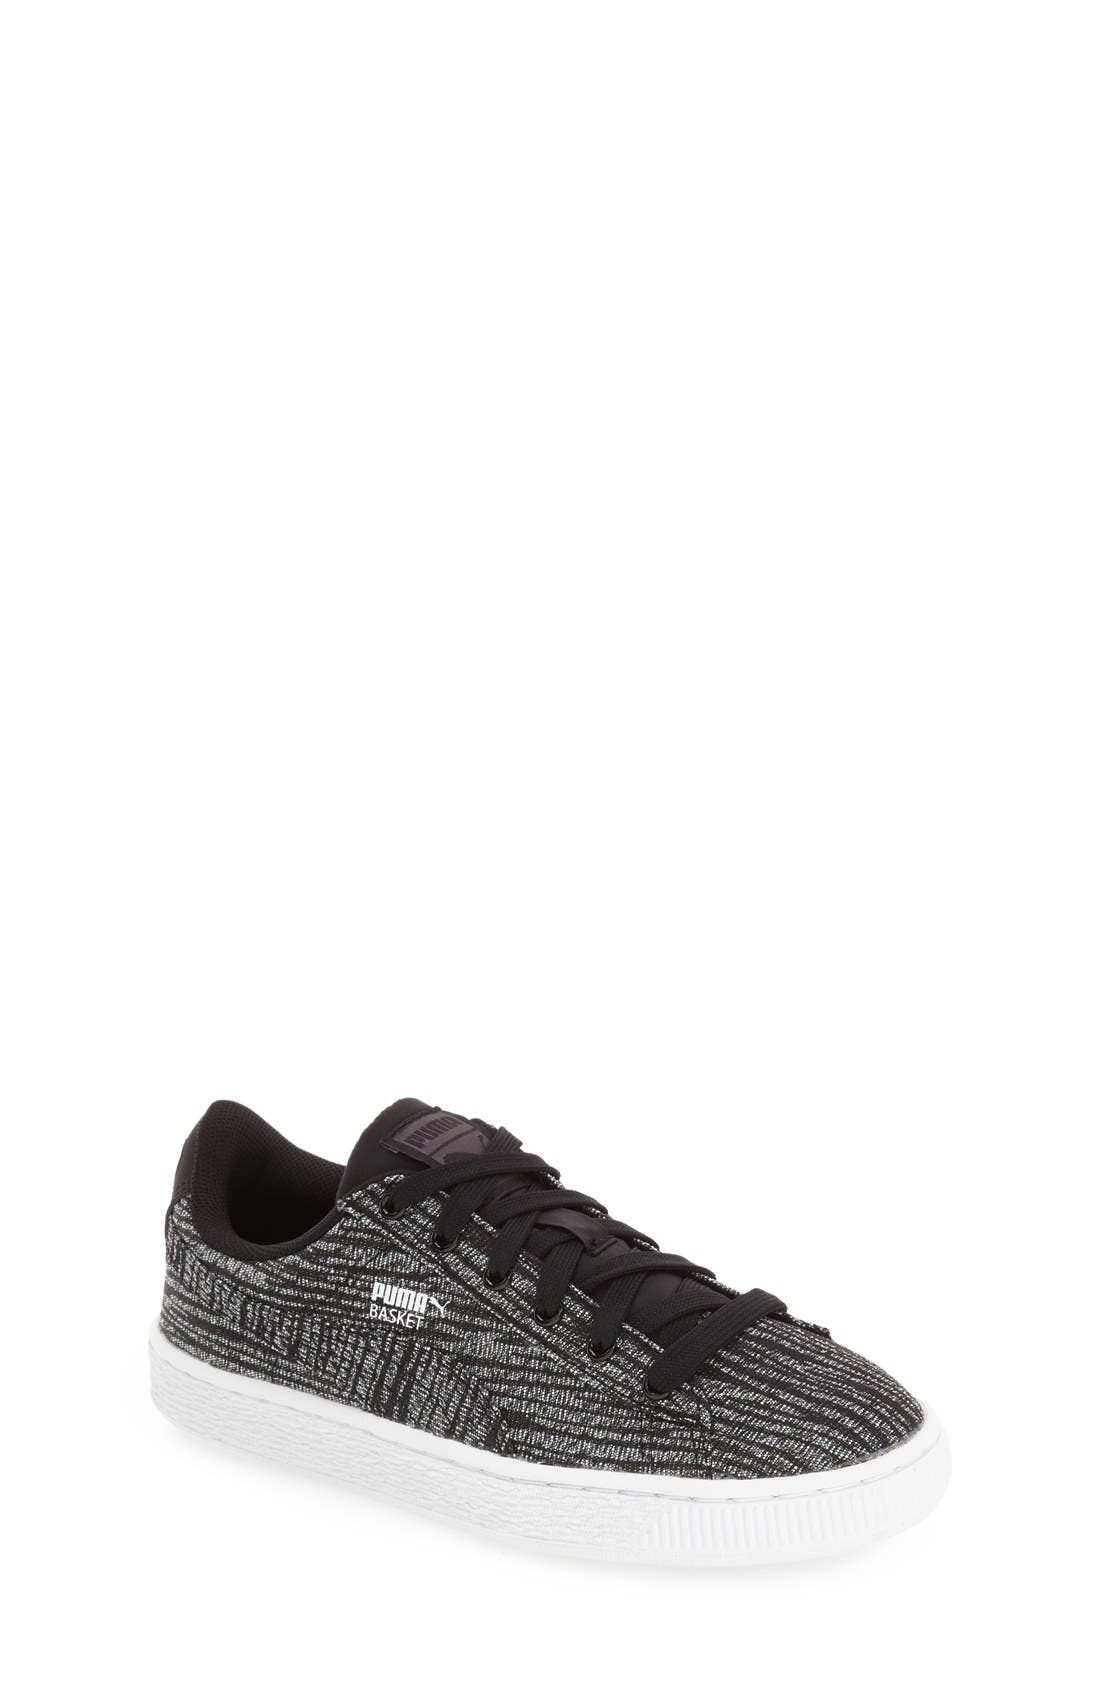 'Basket Tiger' Sneaker,                         Main,                         color,